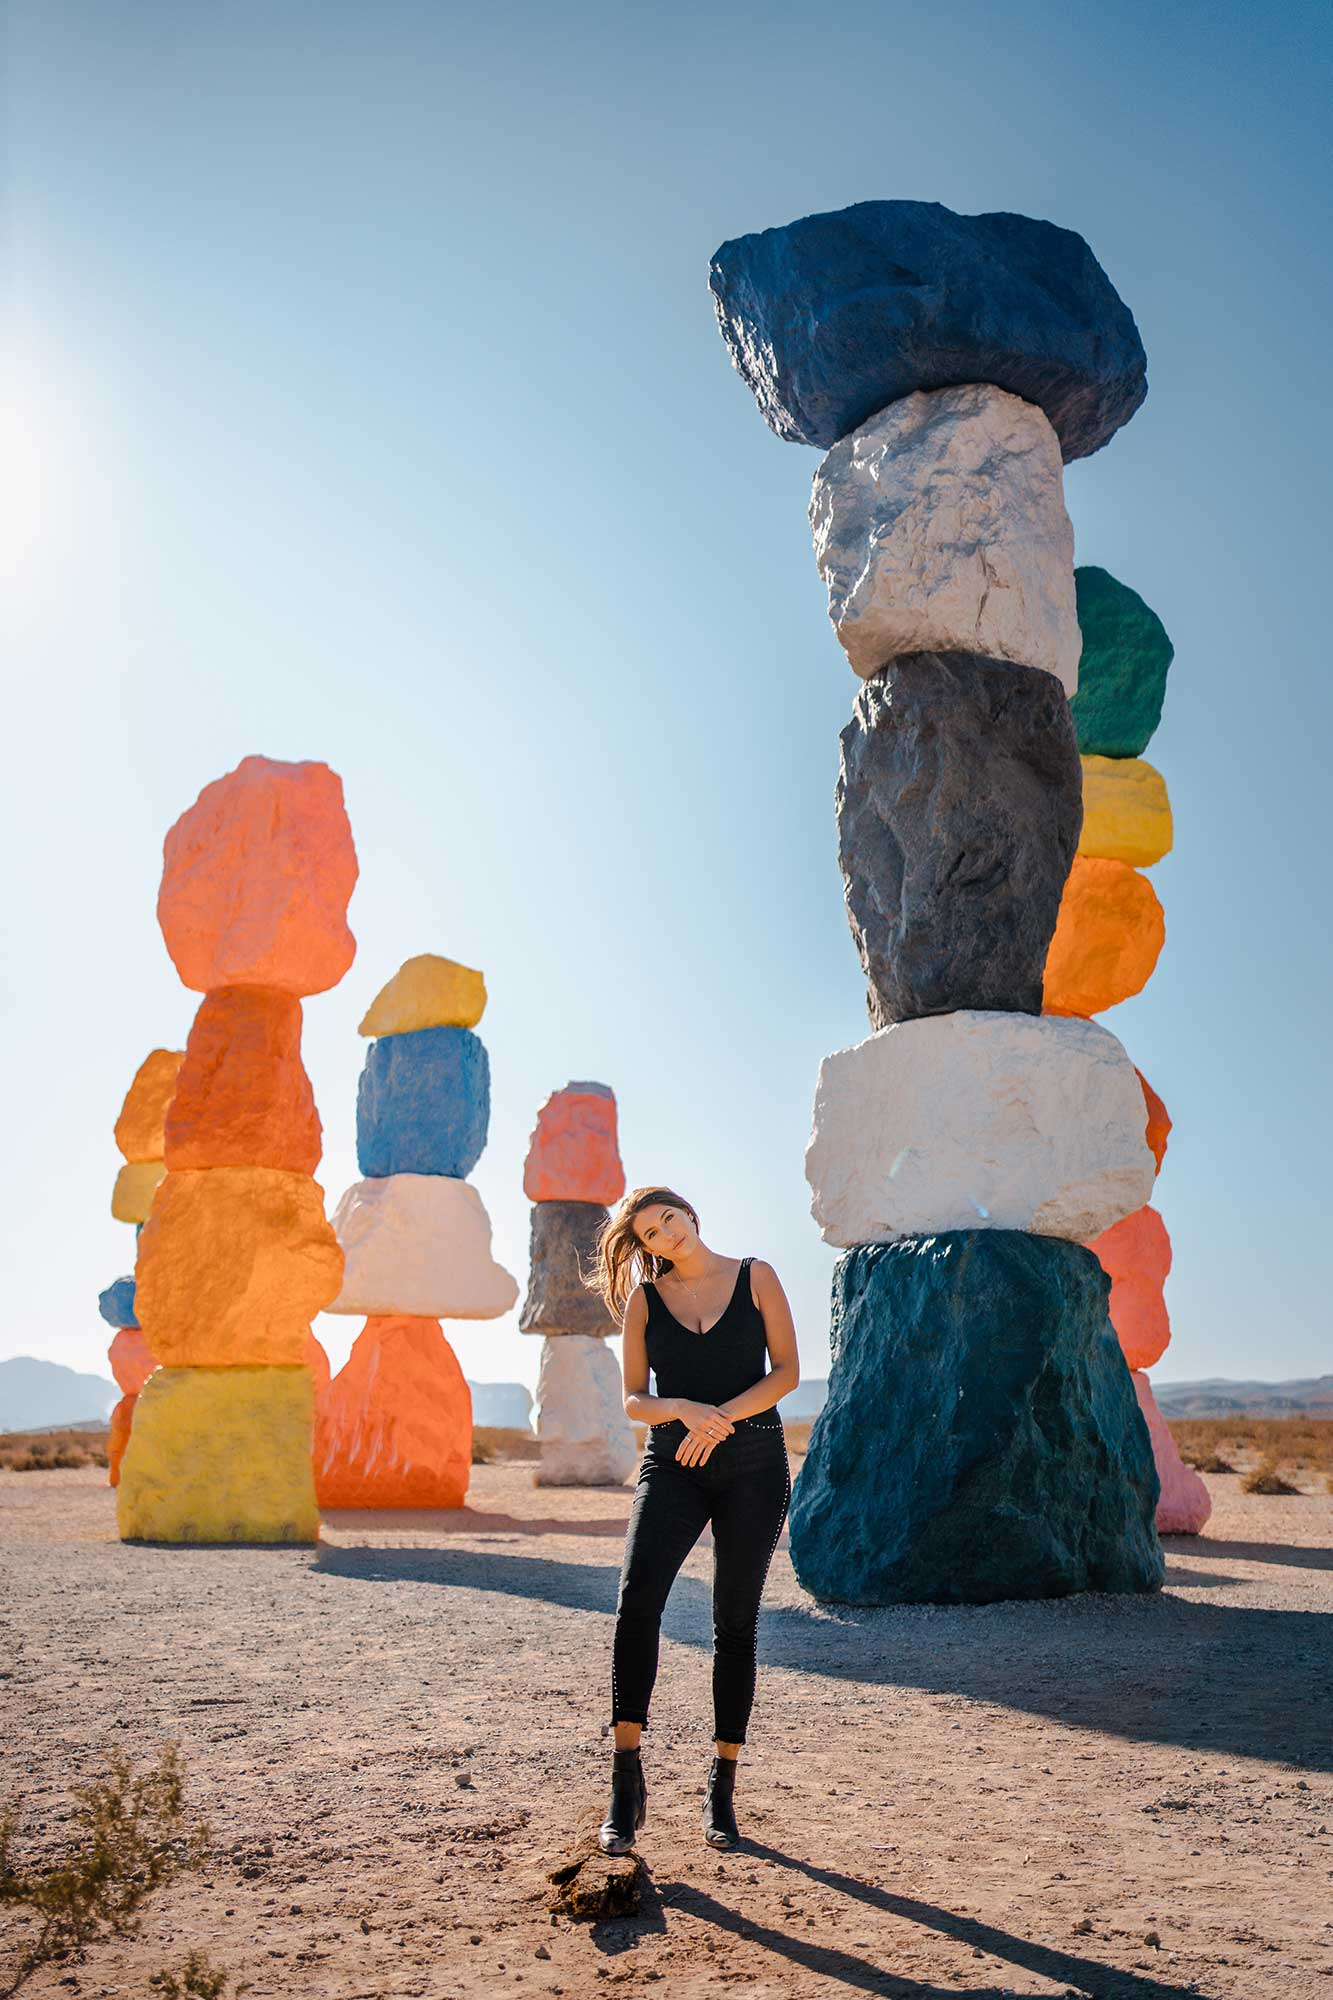 Best Vegas Instagram Spots: Top Locations You Can't Miss on the Strip 7 Magic Mountains